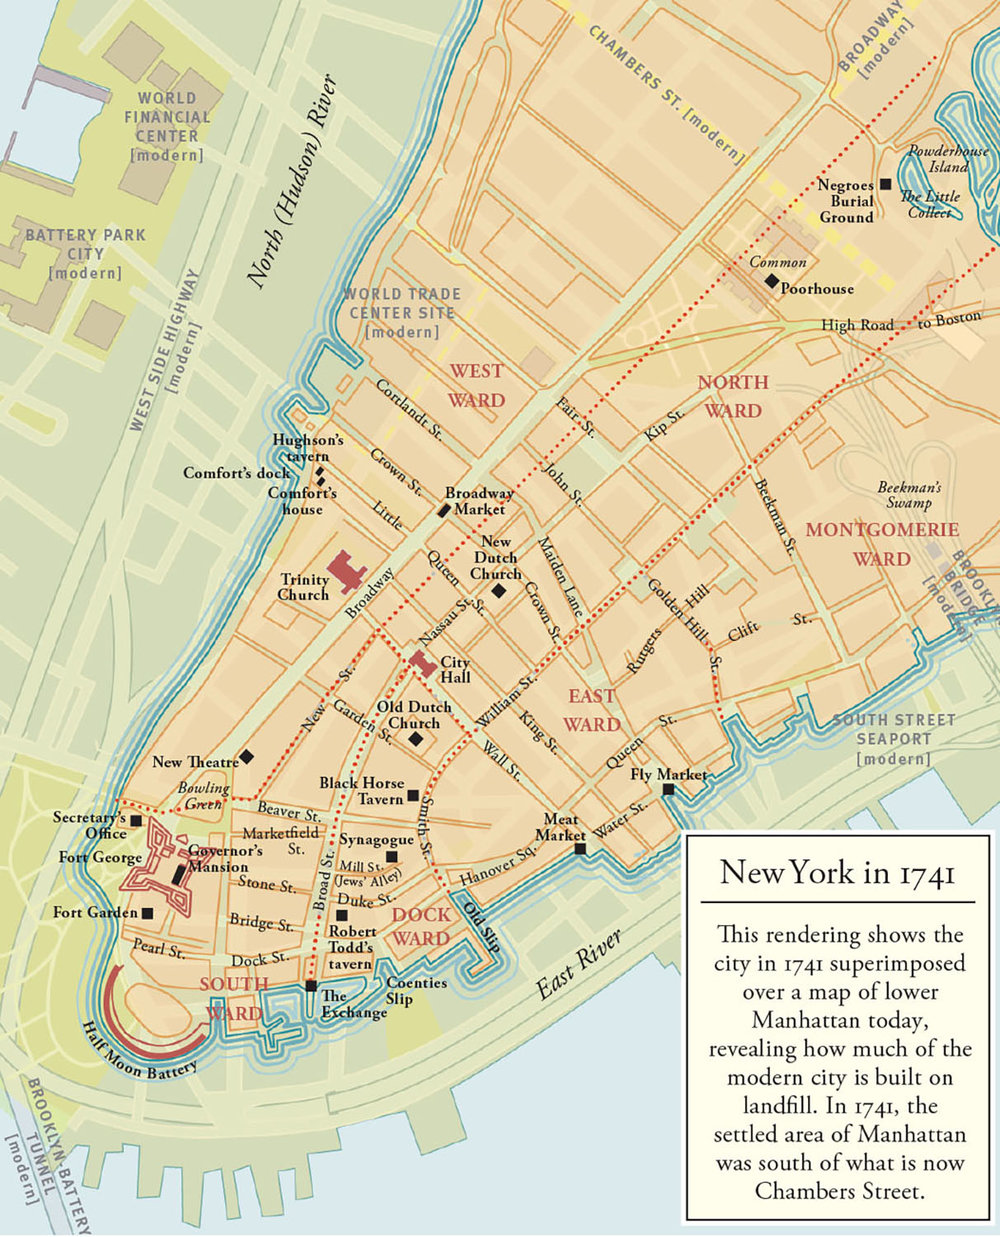 A colorized detail from a grayscale map designed for New York Burning: Liberty, Slavery, and Conspiracy in Eighteenth-Century Manhattan, by Jill Lepore (Knopf, 2005). Map copyright © Jill Lepore.  This map superimposes a rendering of 18th-century New York on the present-day plan; site and street names have been edited to suit the text.